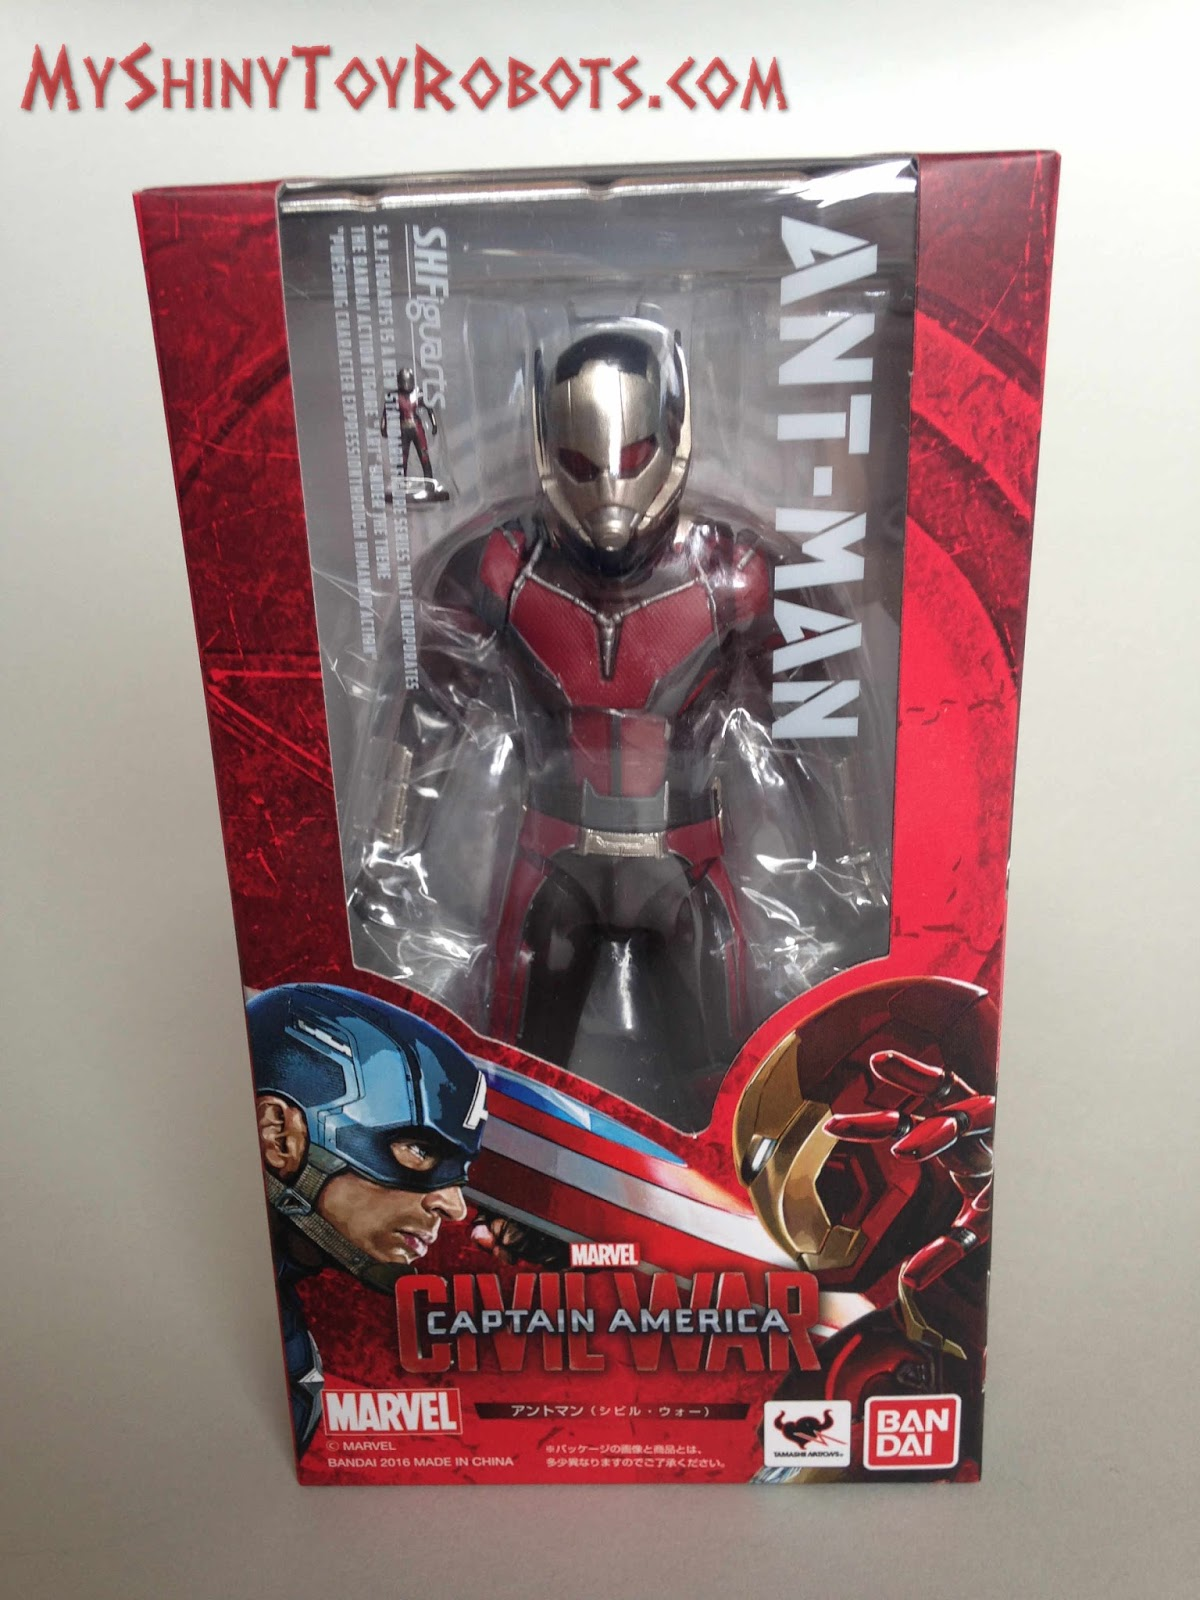 My Shiny Toy Robots: Toybox REVIEW: S.H. Figuarts Ant-Man